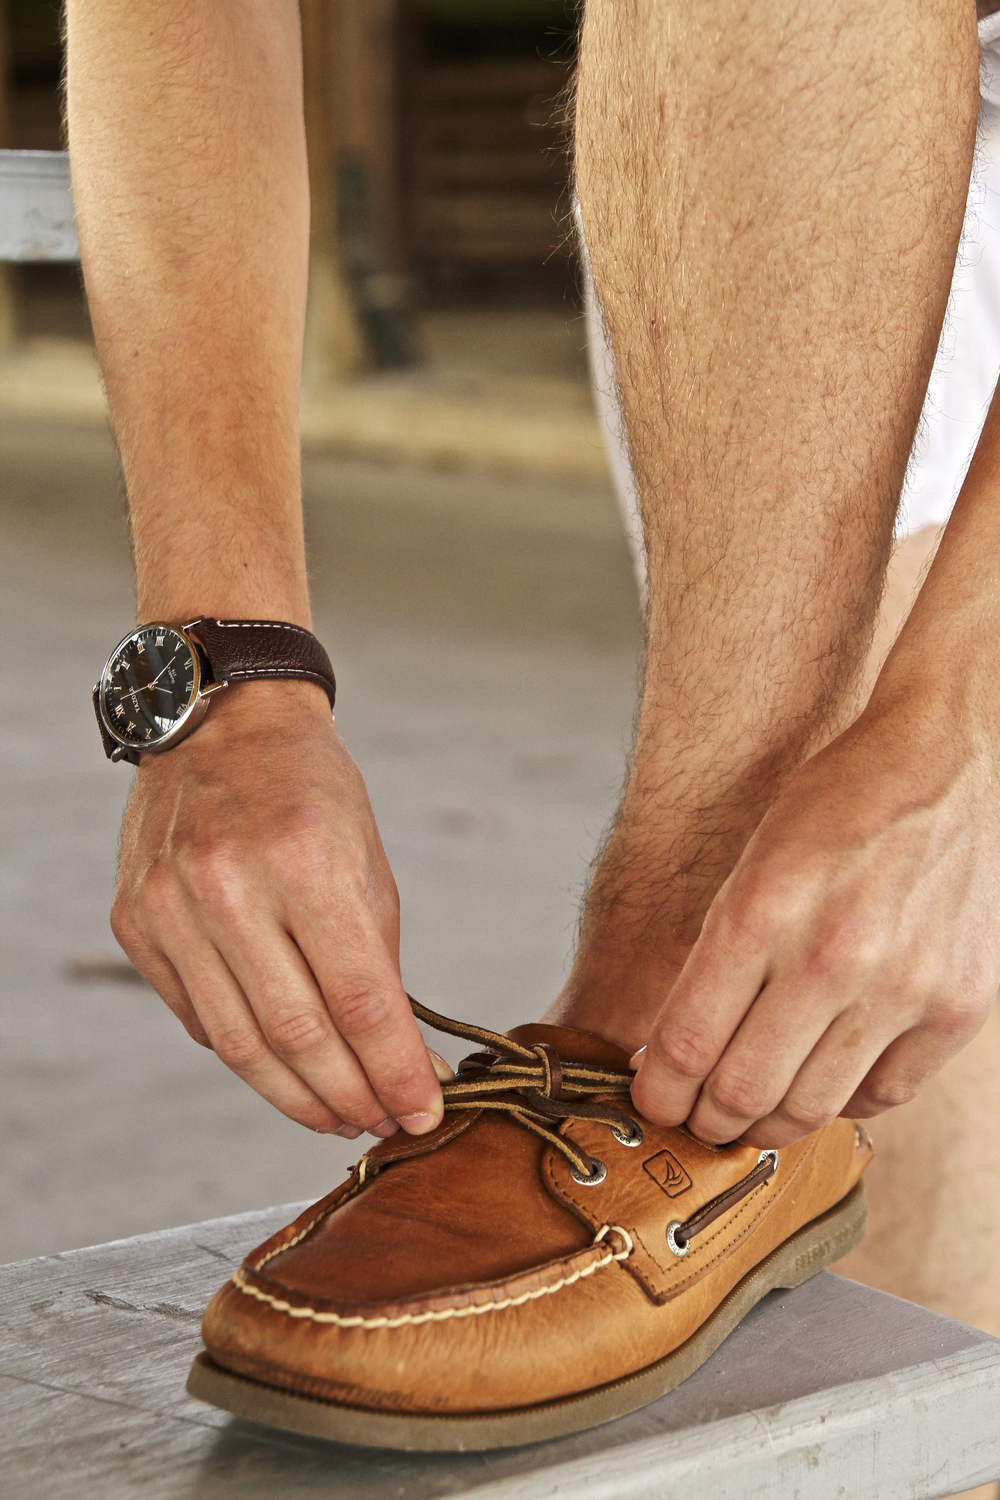 Fashion style How to sperrys wear boat shoes for woman